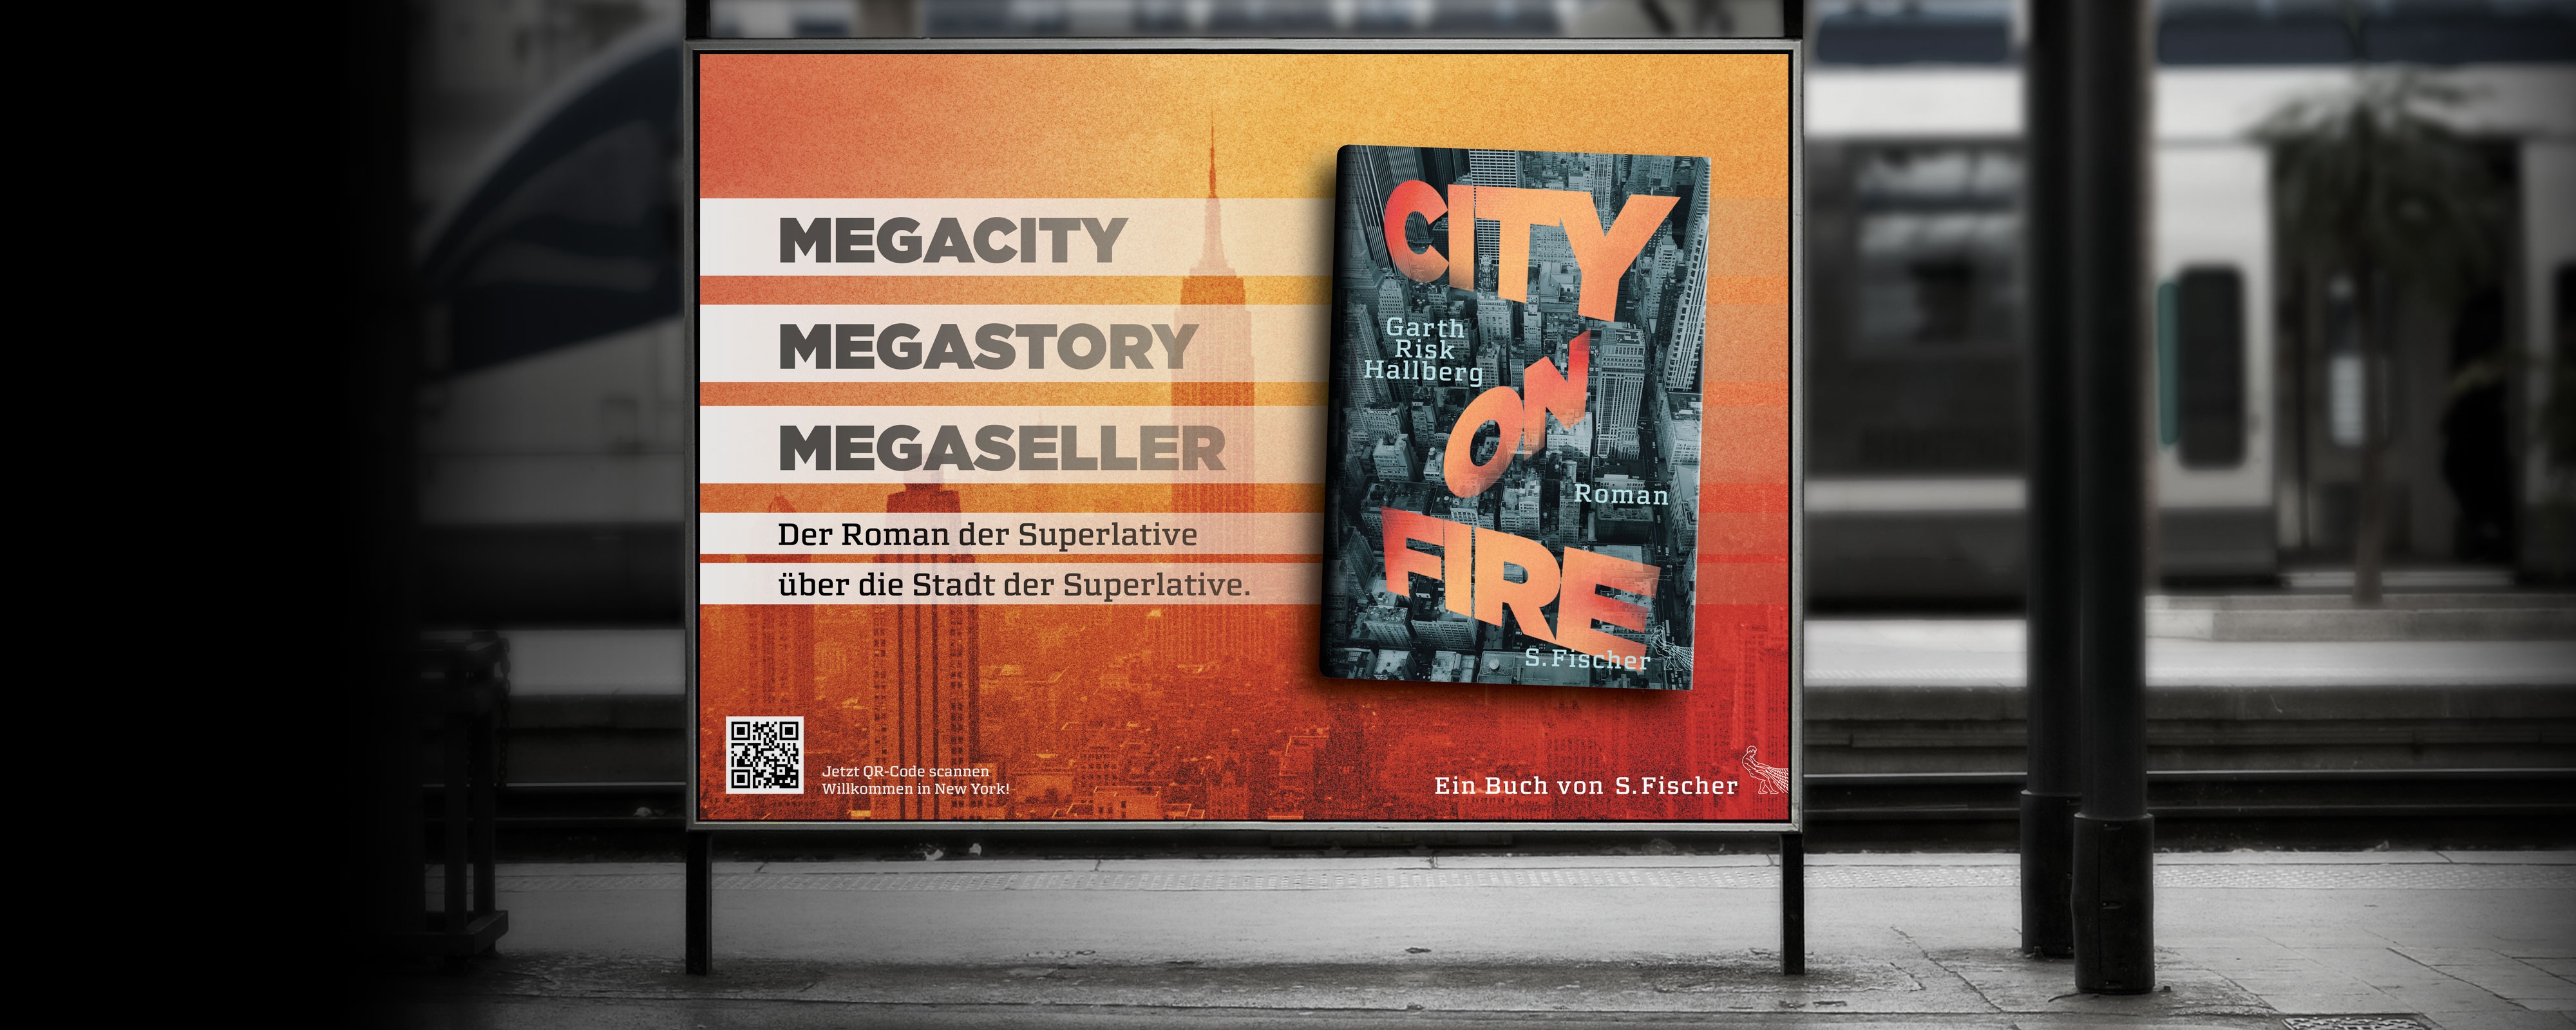 Fischer – Garth Risk Hallberg; City on fire Großflächenplakat